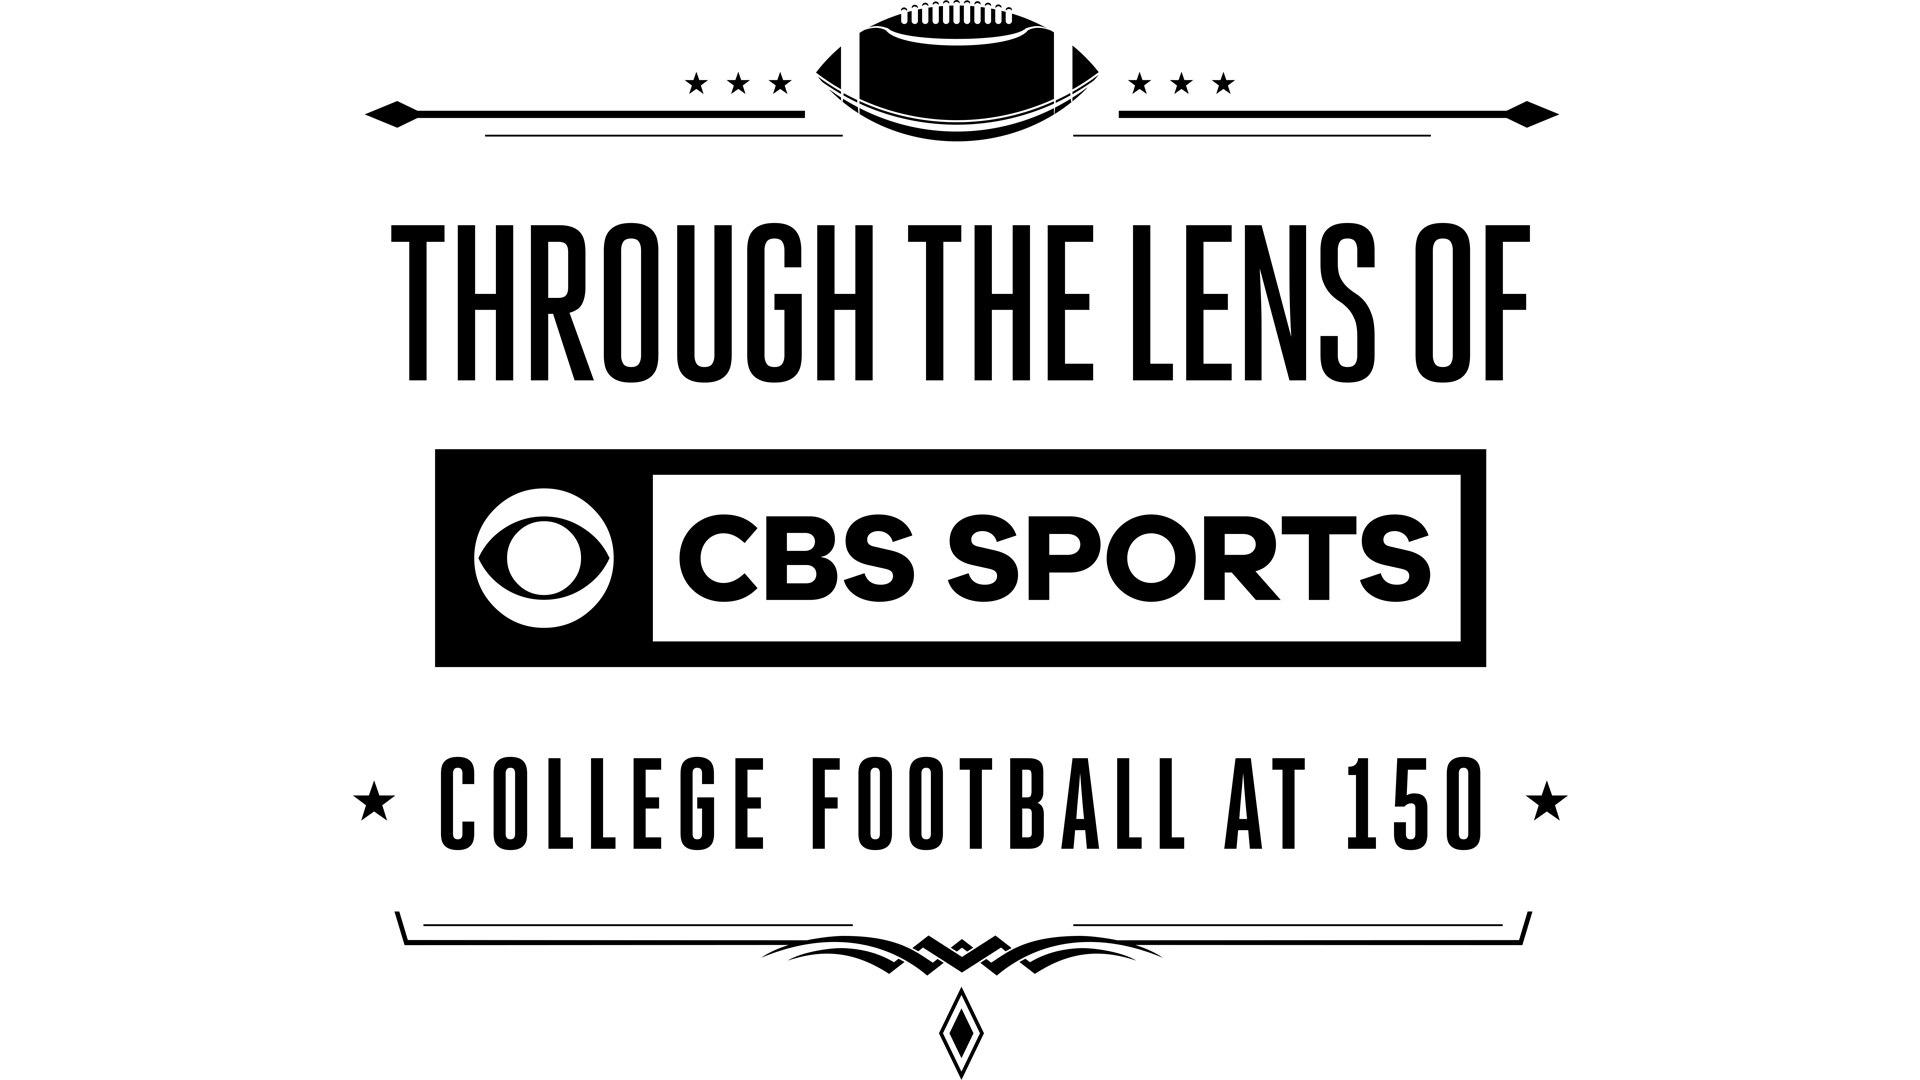 Through The Lens of CBS Sports